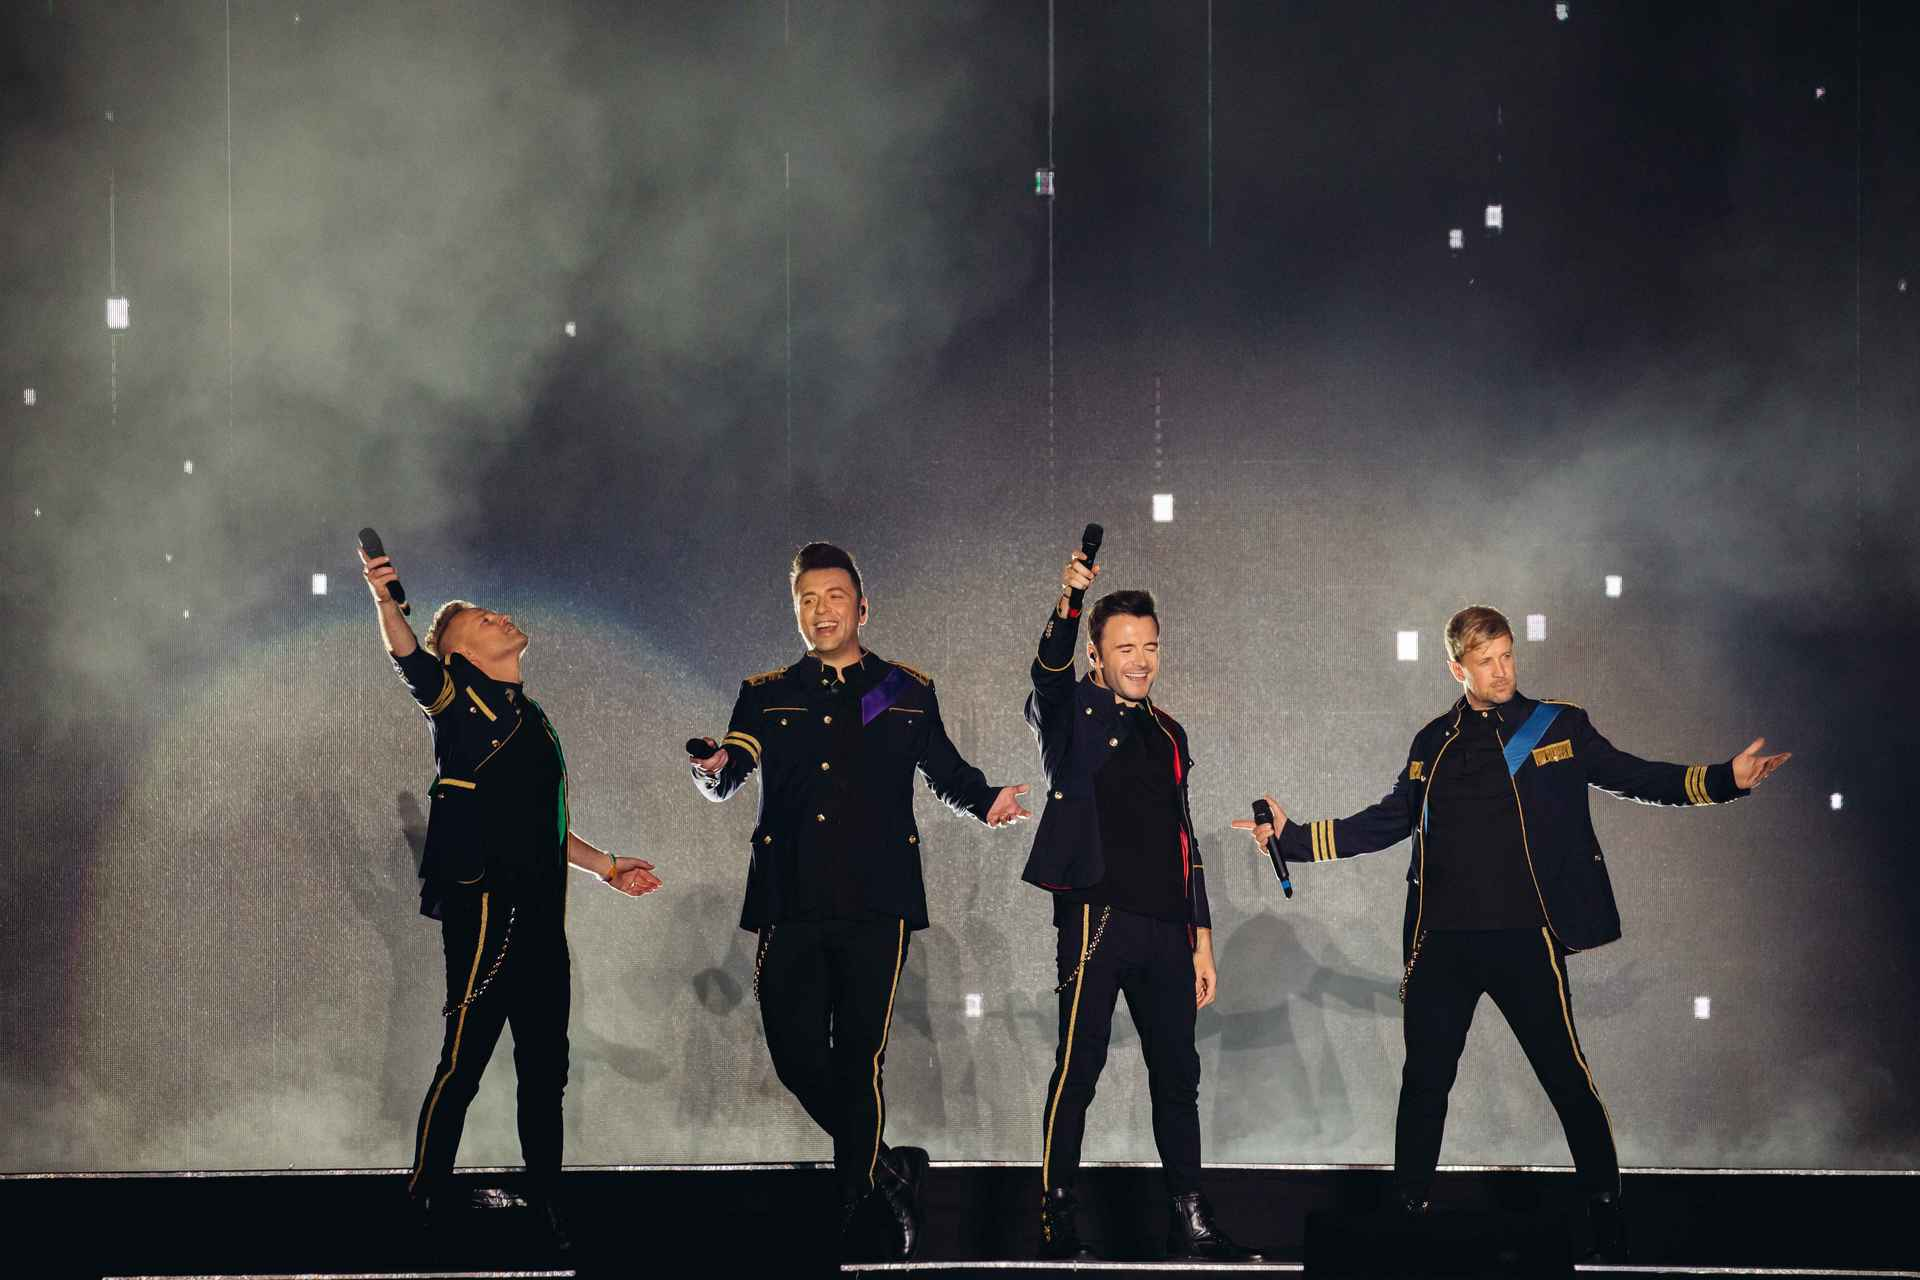 Westlife delivers an intimate and nostalgic performance at